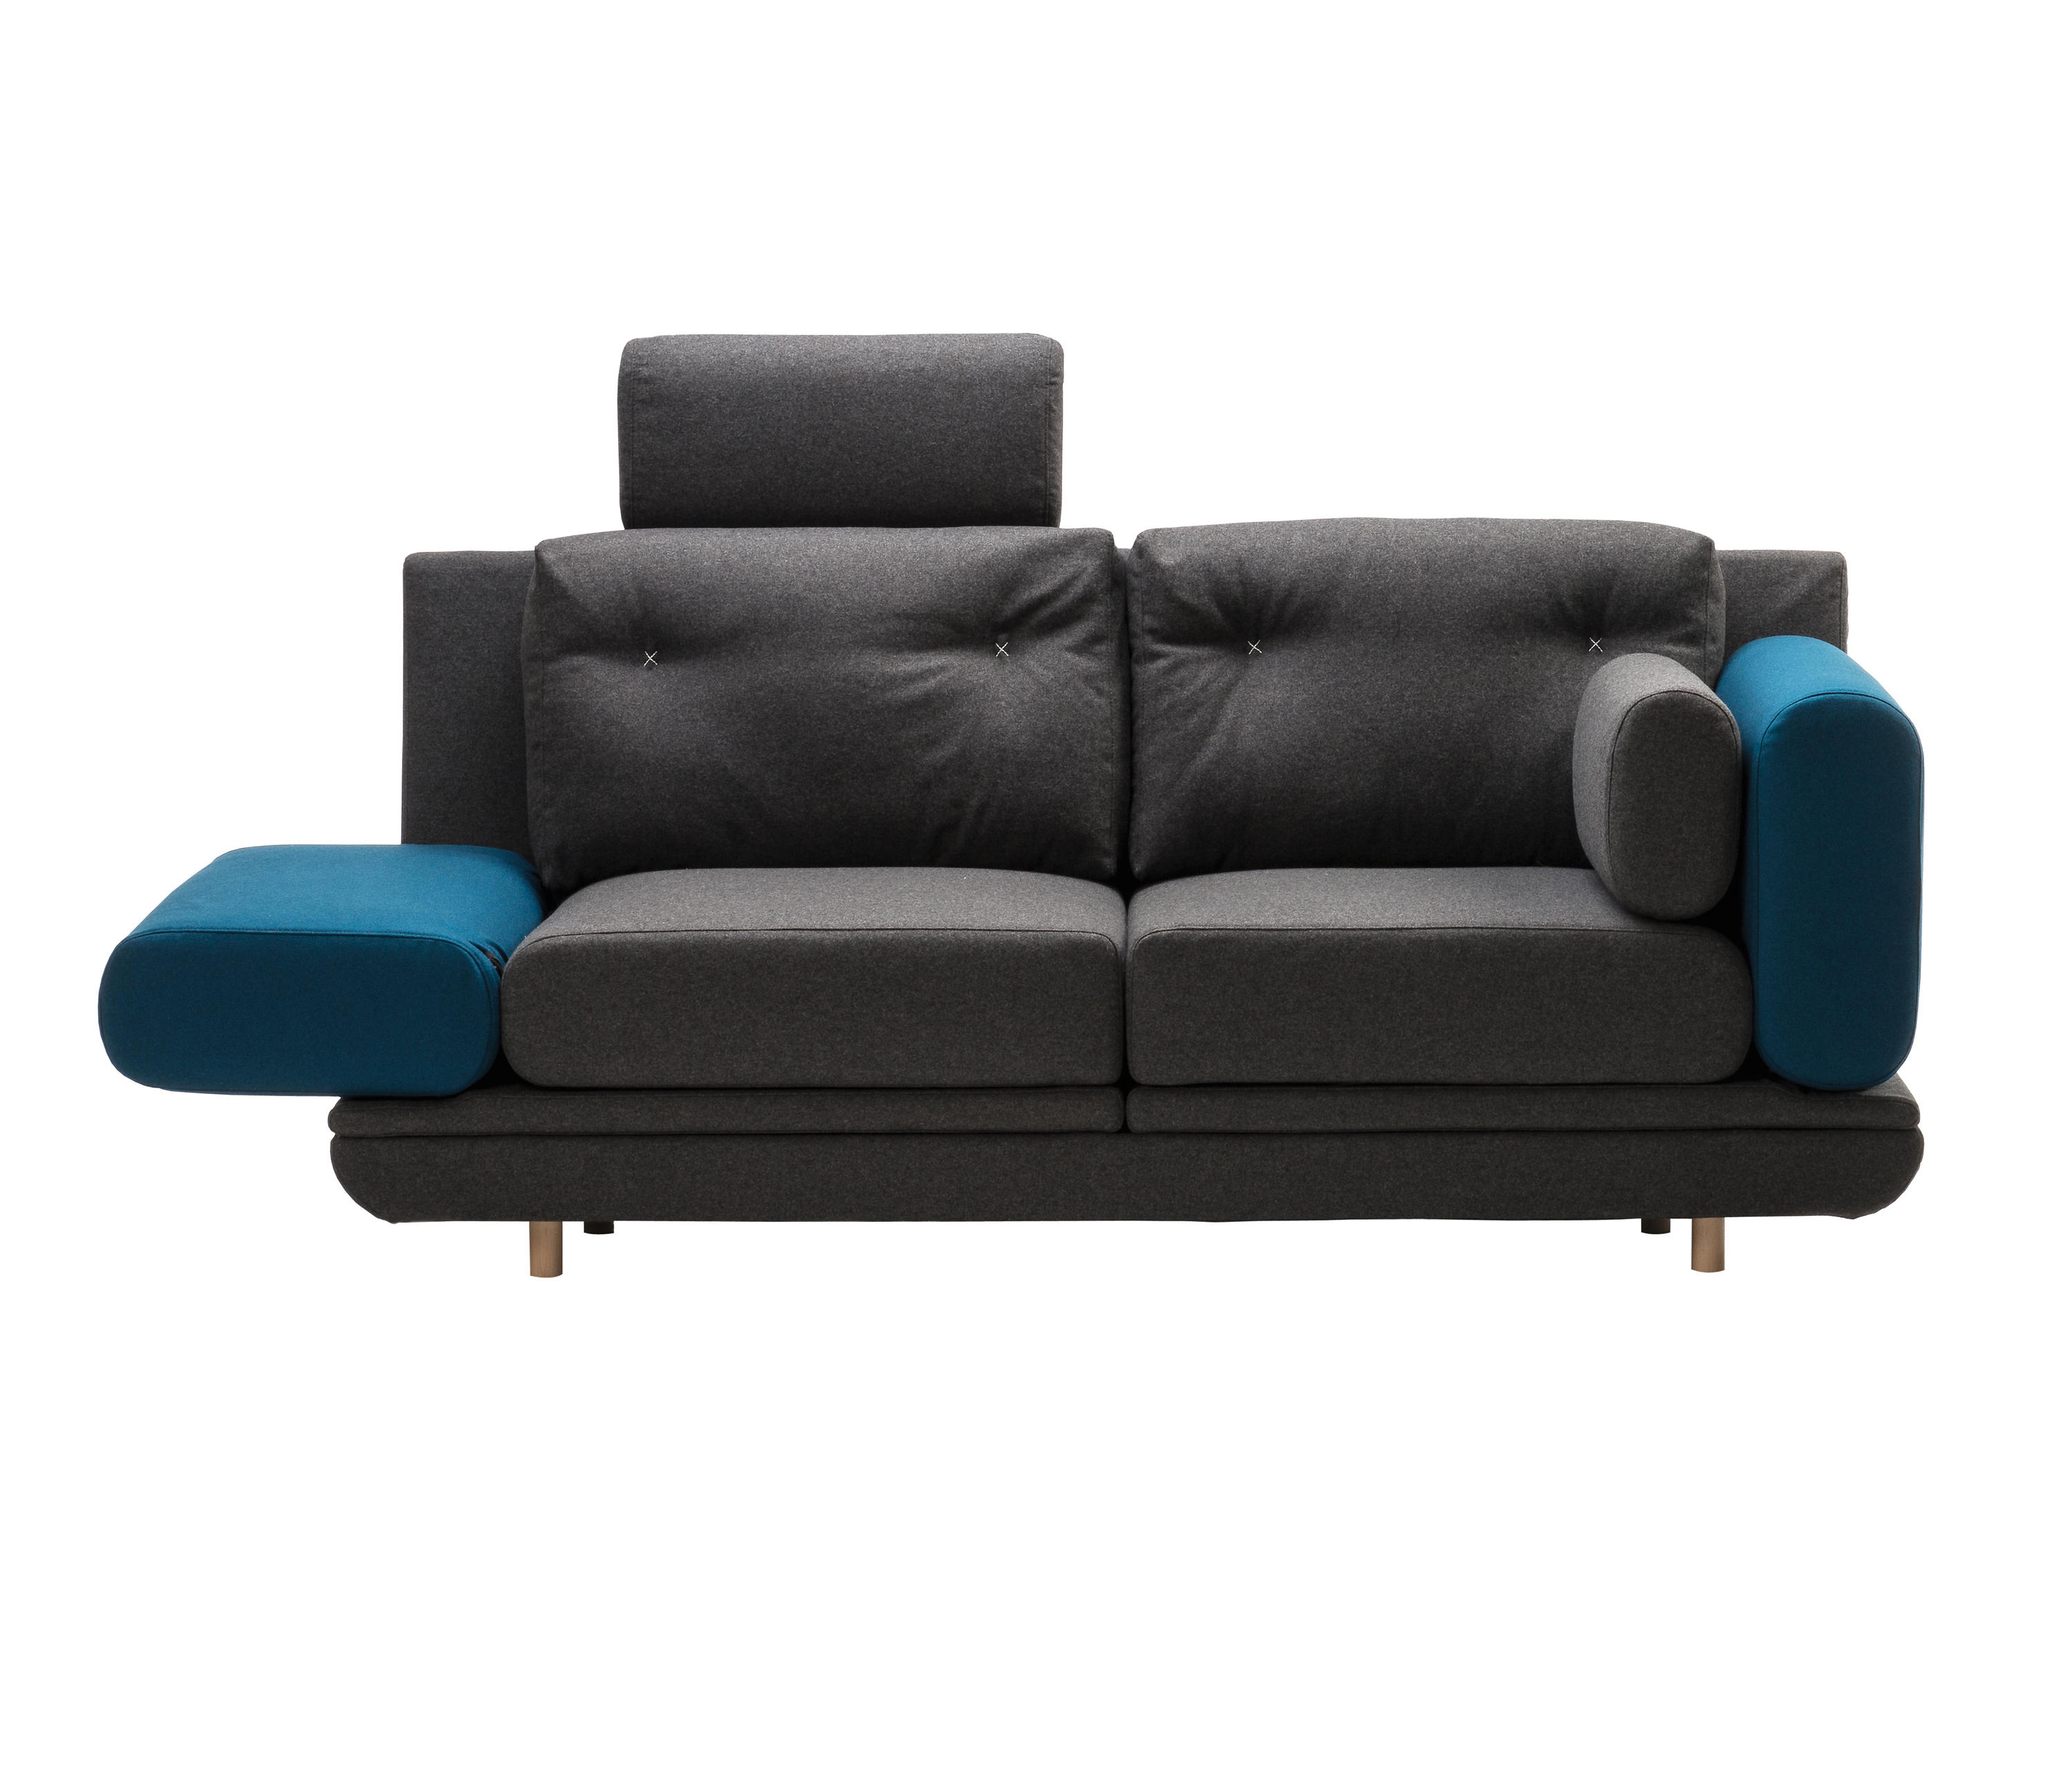 dodenhof sofa awesome dodenhof sofa with dodenhof sofa medium size of couchtische bei dodenhof. Black Bedroom Furniture Sets. Home Design Ideas